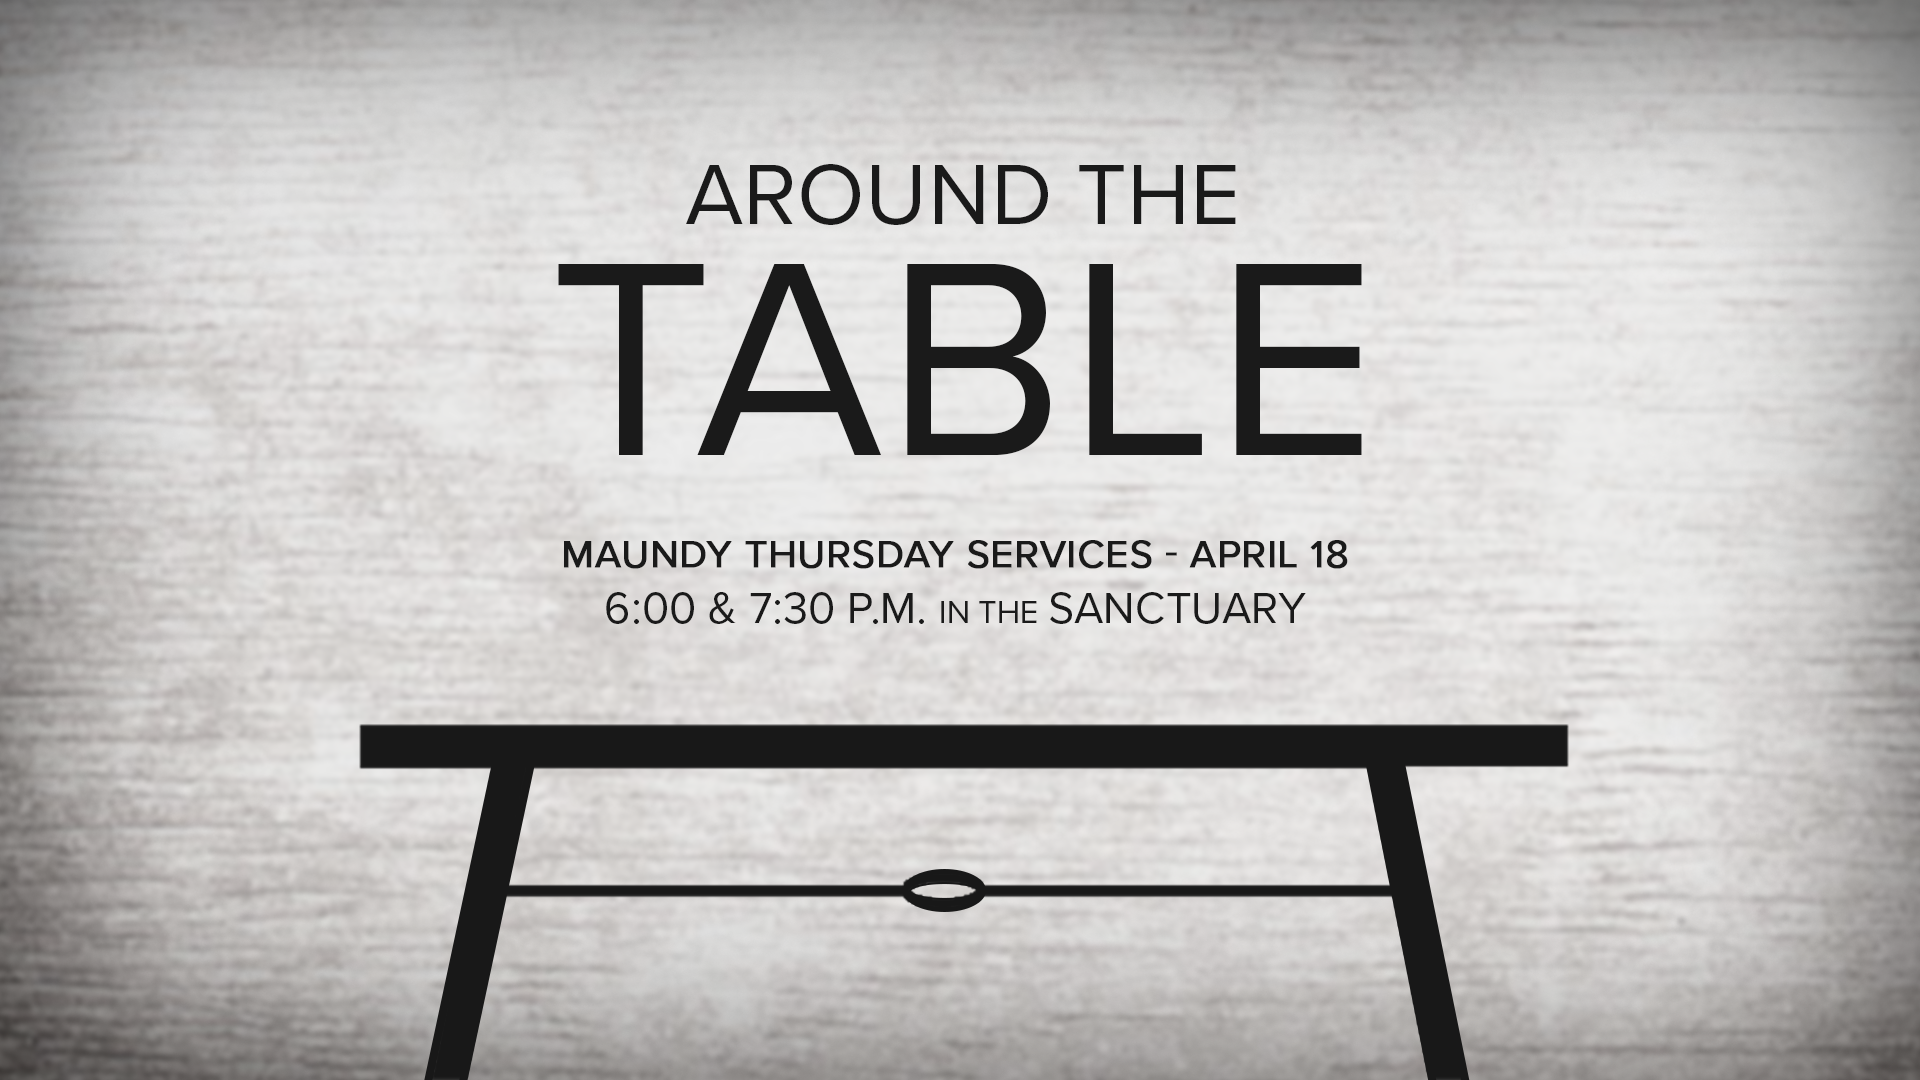 Maundy Thursday  Thursday, April 18  6:00 p.m. and 7:30 p.m. In the Sanctuary Communion by Intinction.  Childcare available with a reservation,  call the Church Office,  770-993-6316